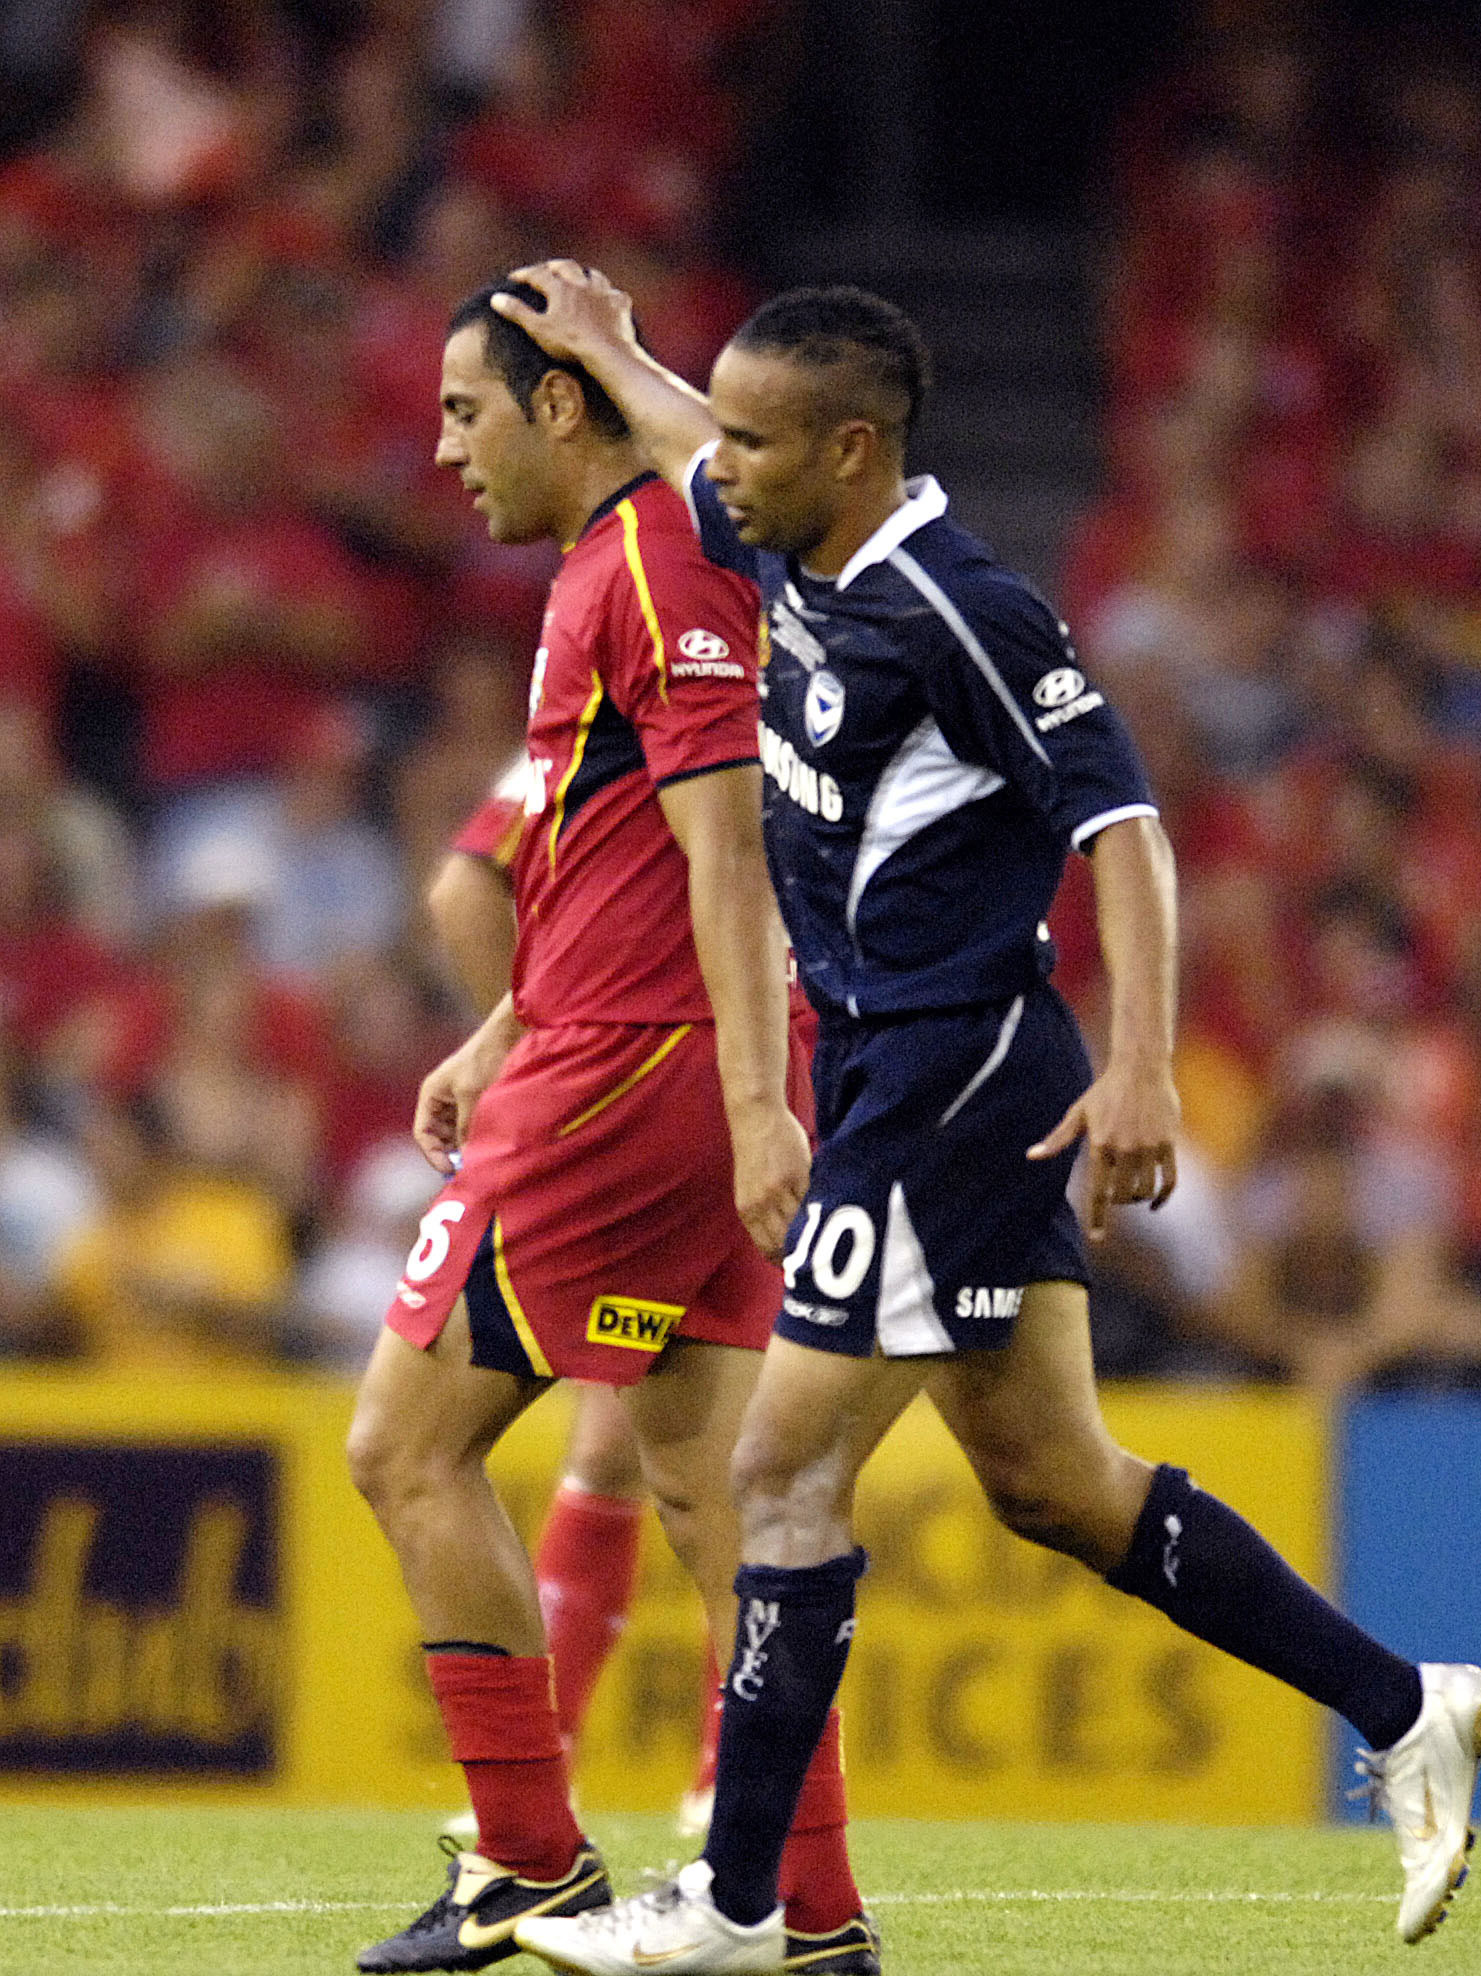 Archie Thompson farewells red-carded Ross Aloisi during United's disastrous 2007 grand final showing. AAP image